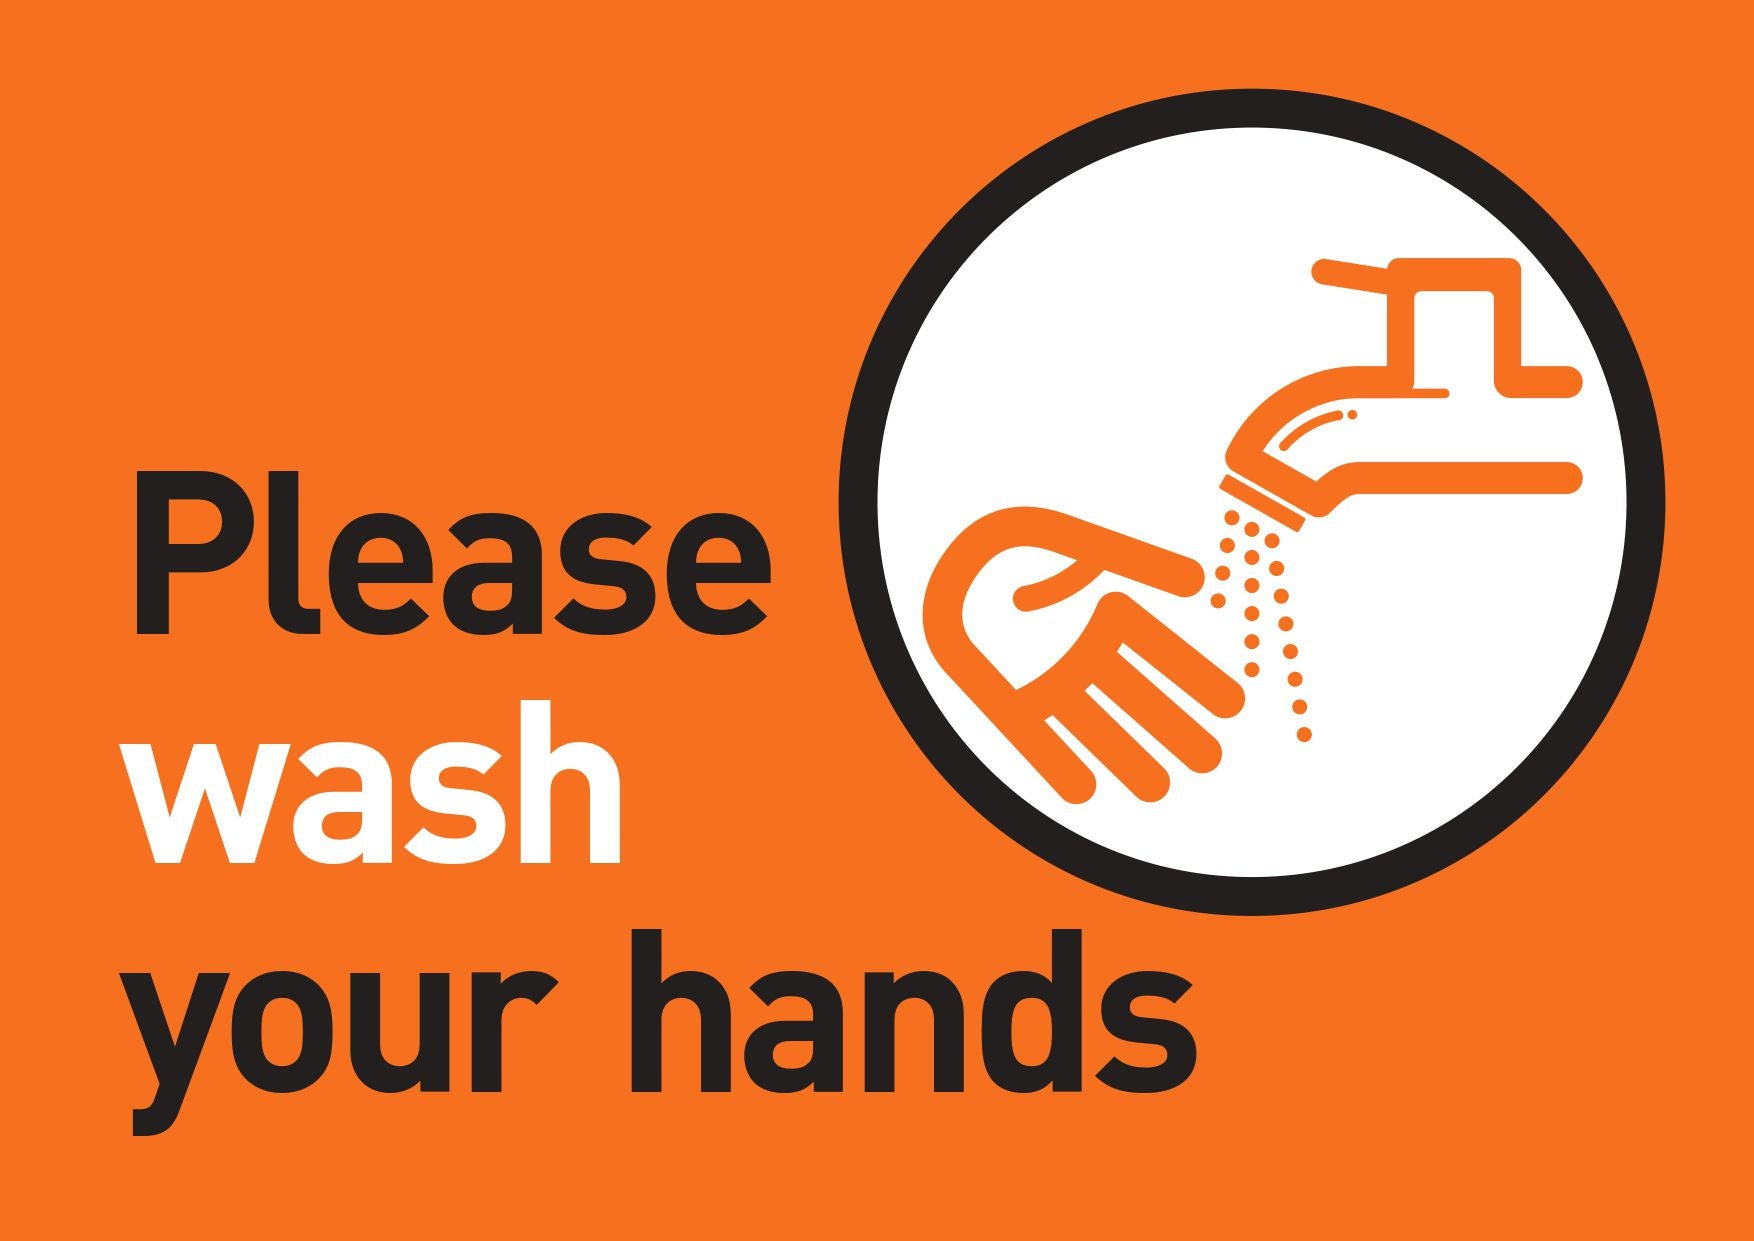 Please wash your hands FREE Sign Design